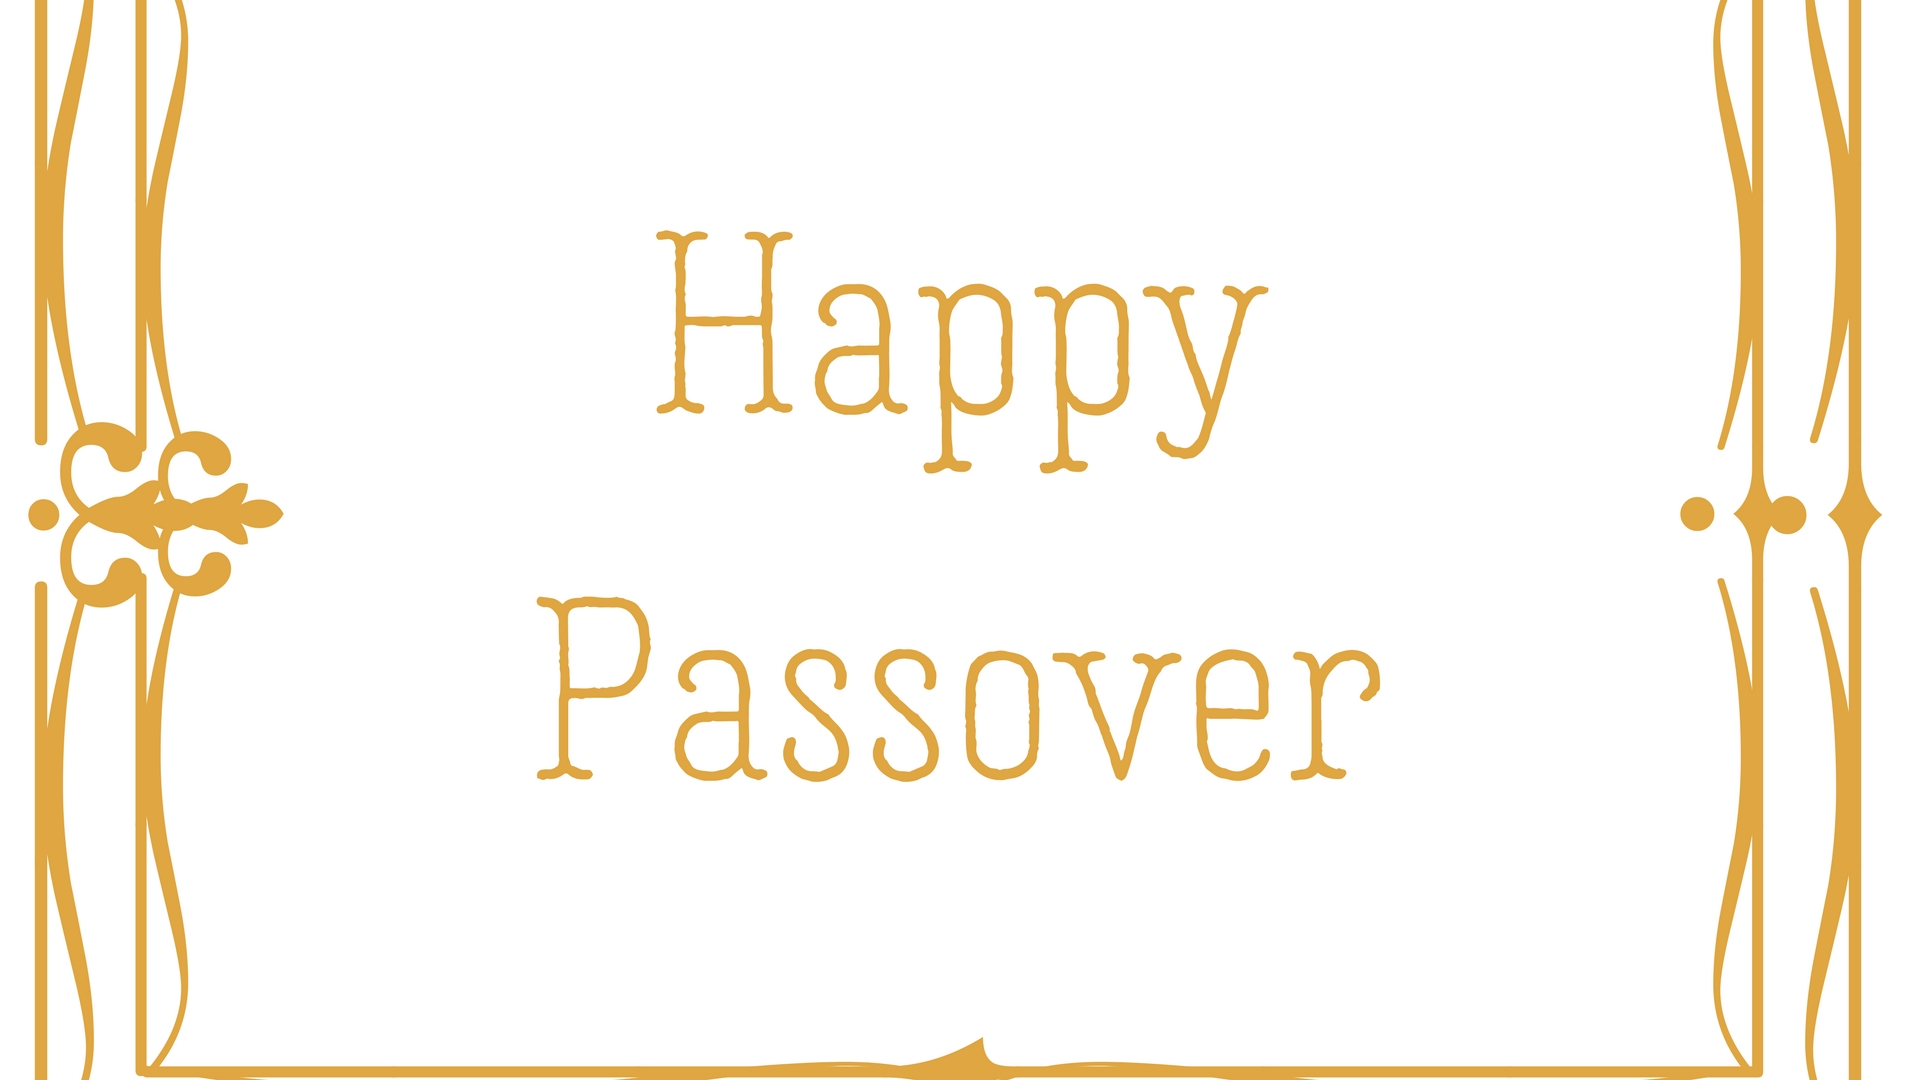 Happy Passover Rectangle Frame Greeting Card Postcard 4